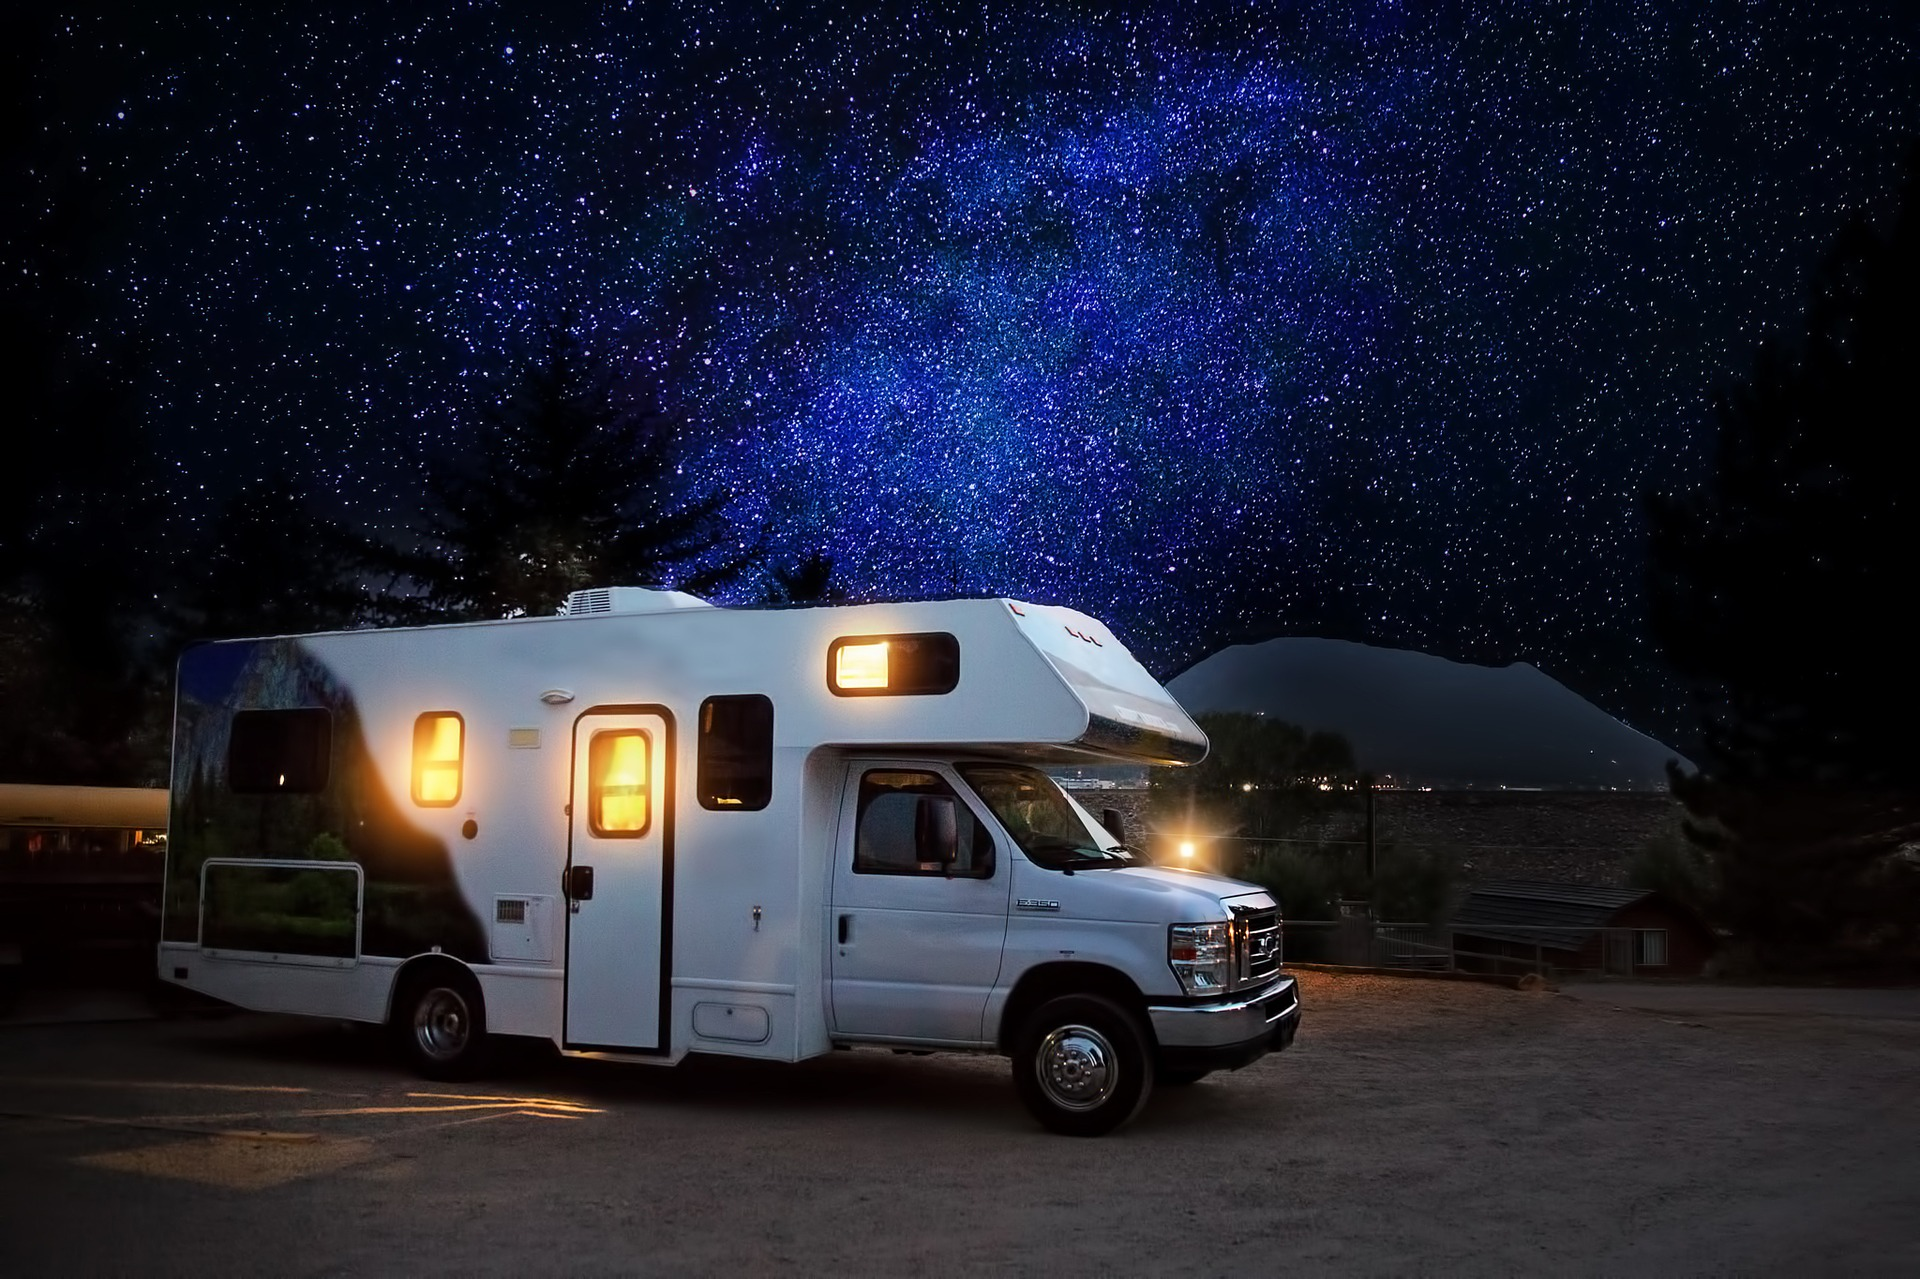 An image related to the RV